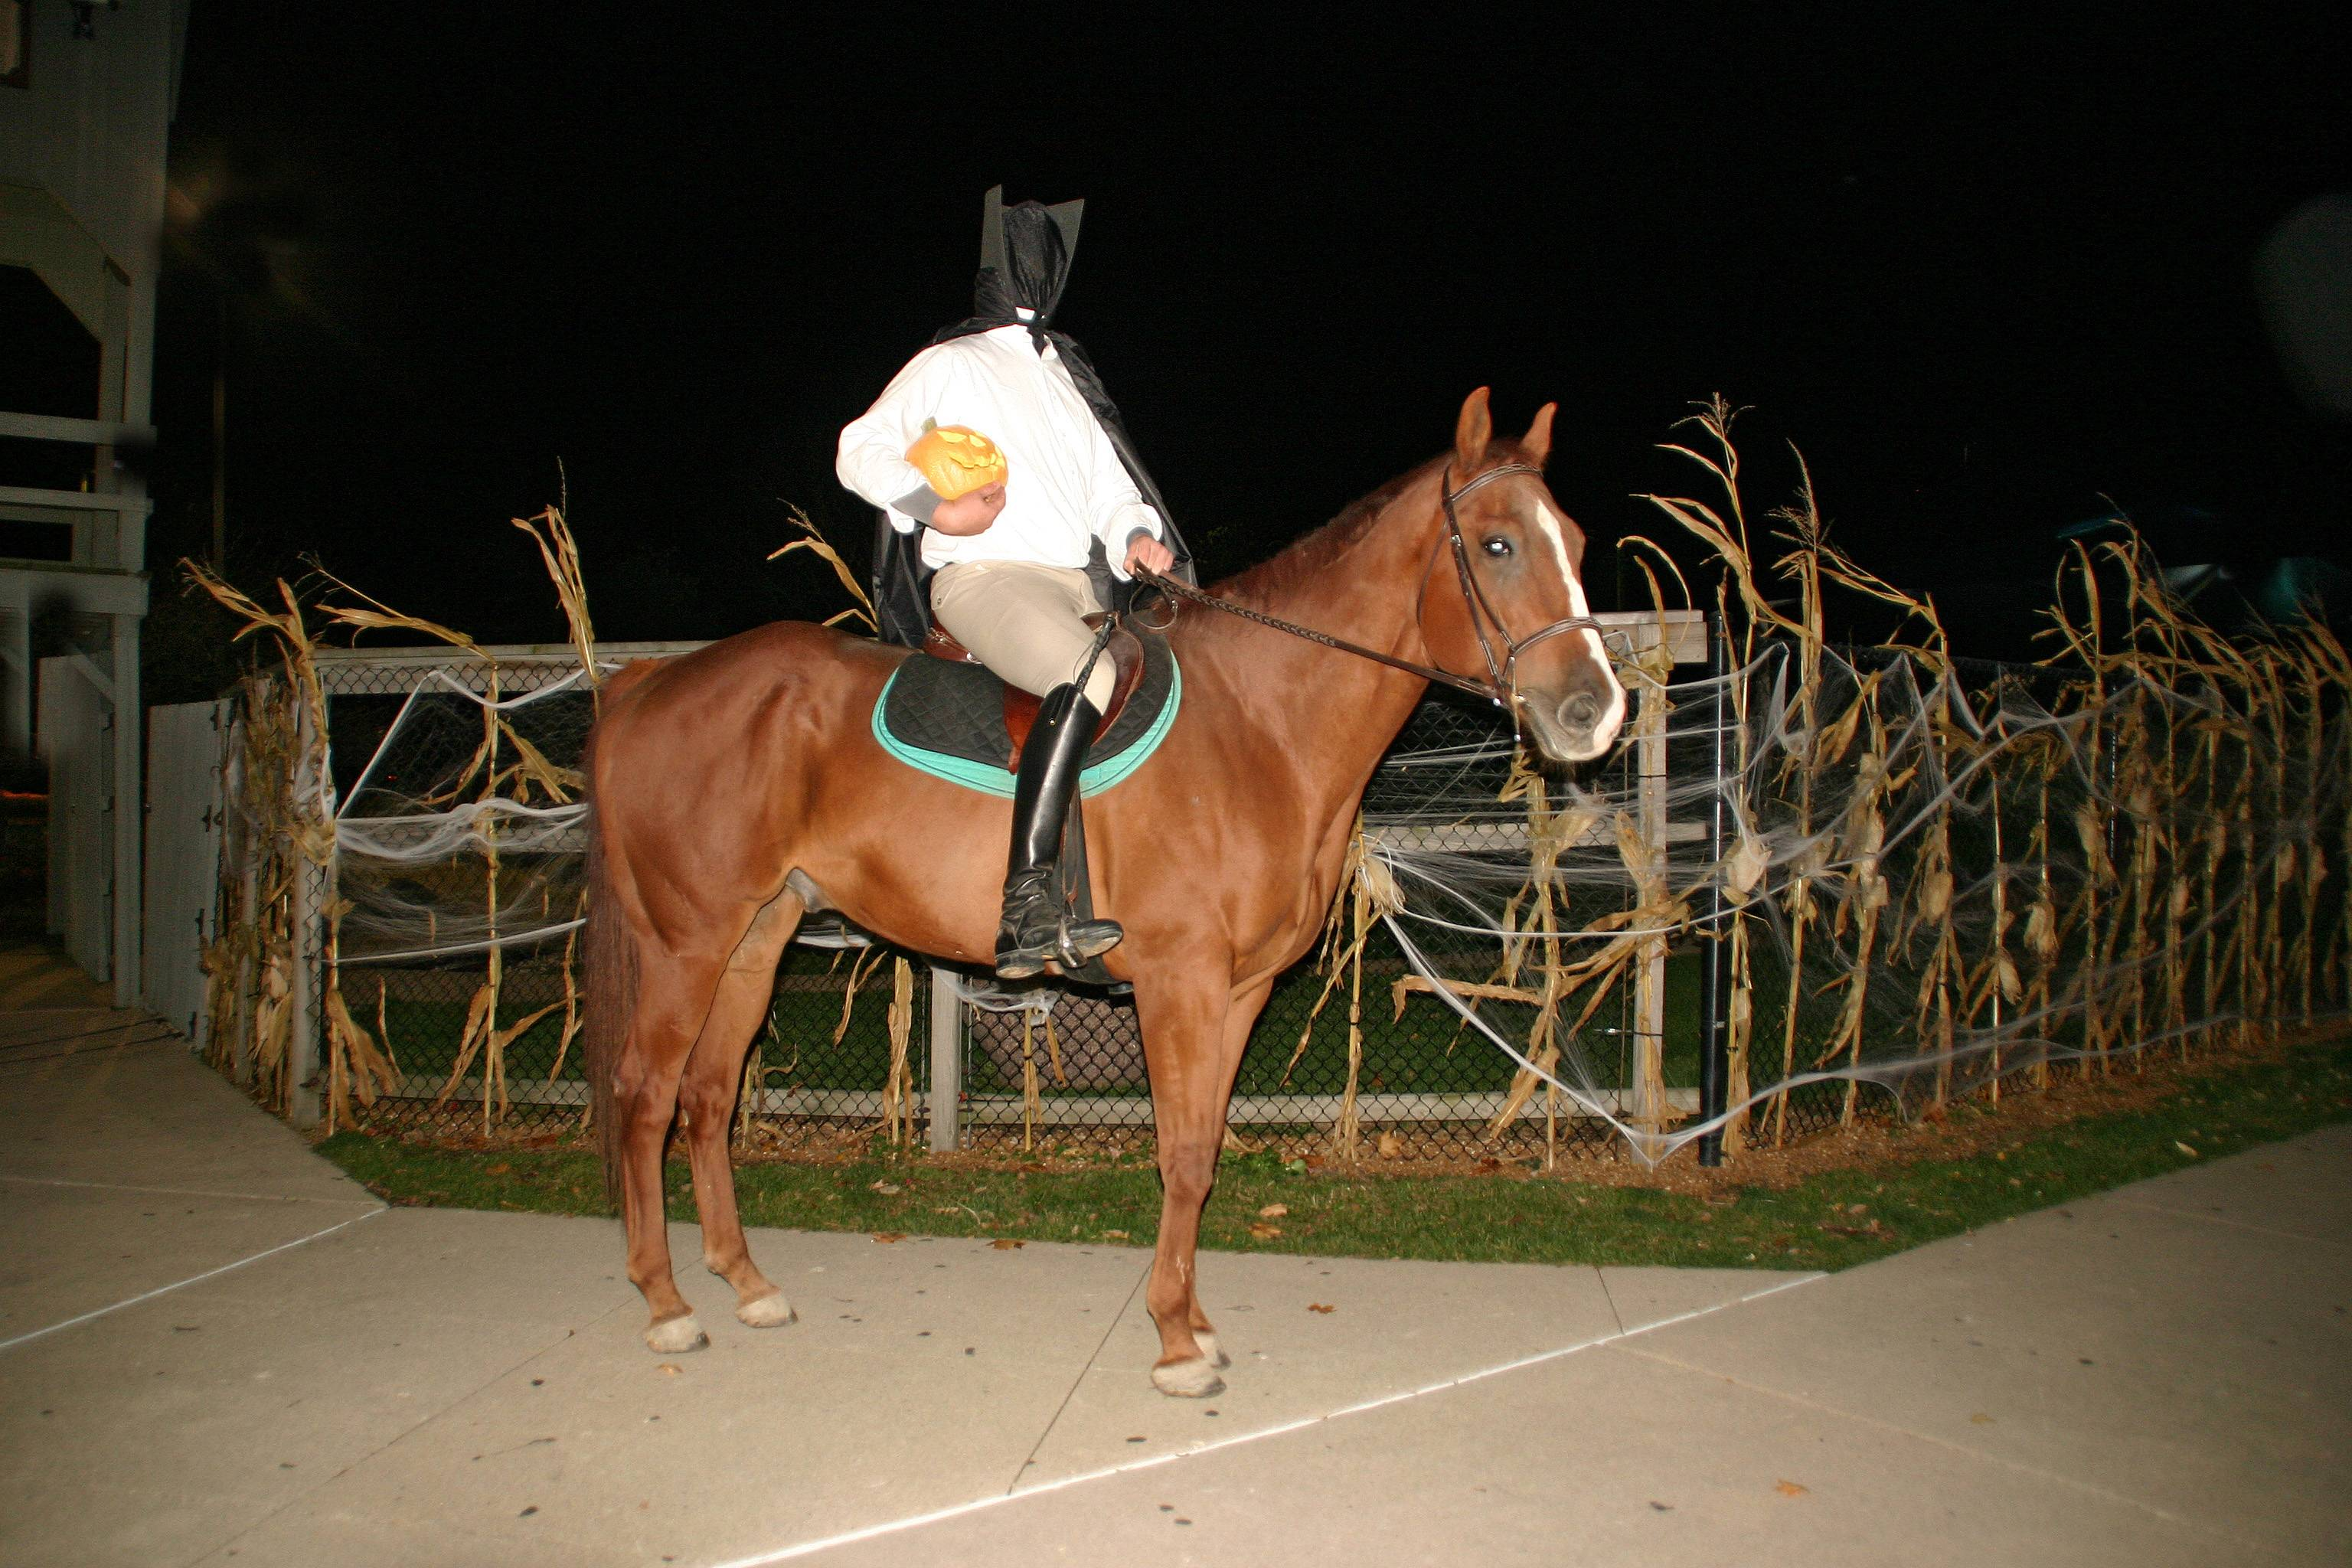 The Headless Horseman rides again at the 2013 Haunted Hole-O-Ween on October 25-27.